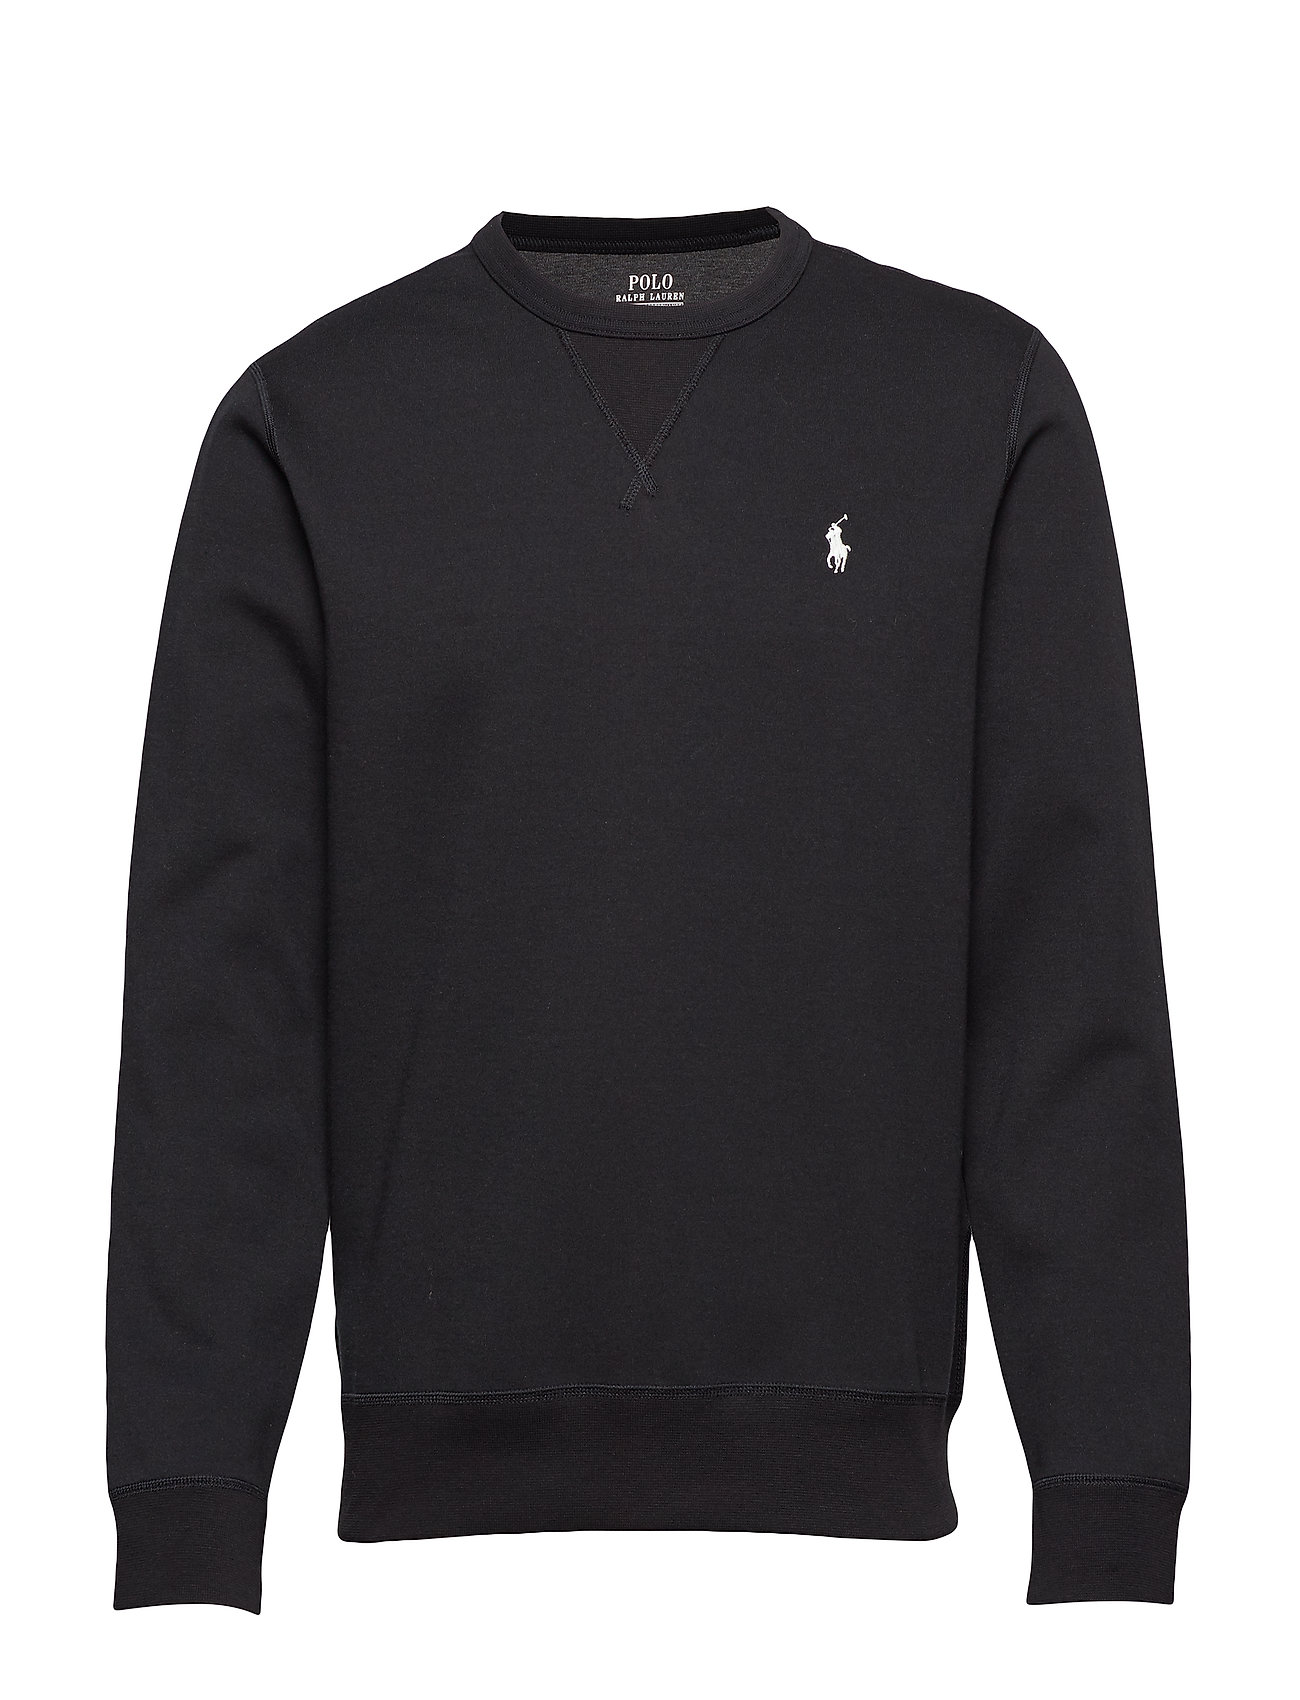 Polo Ralph Lauren Double-Knit Sweatshirt - POLO BLACK/CREAM